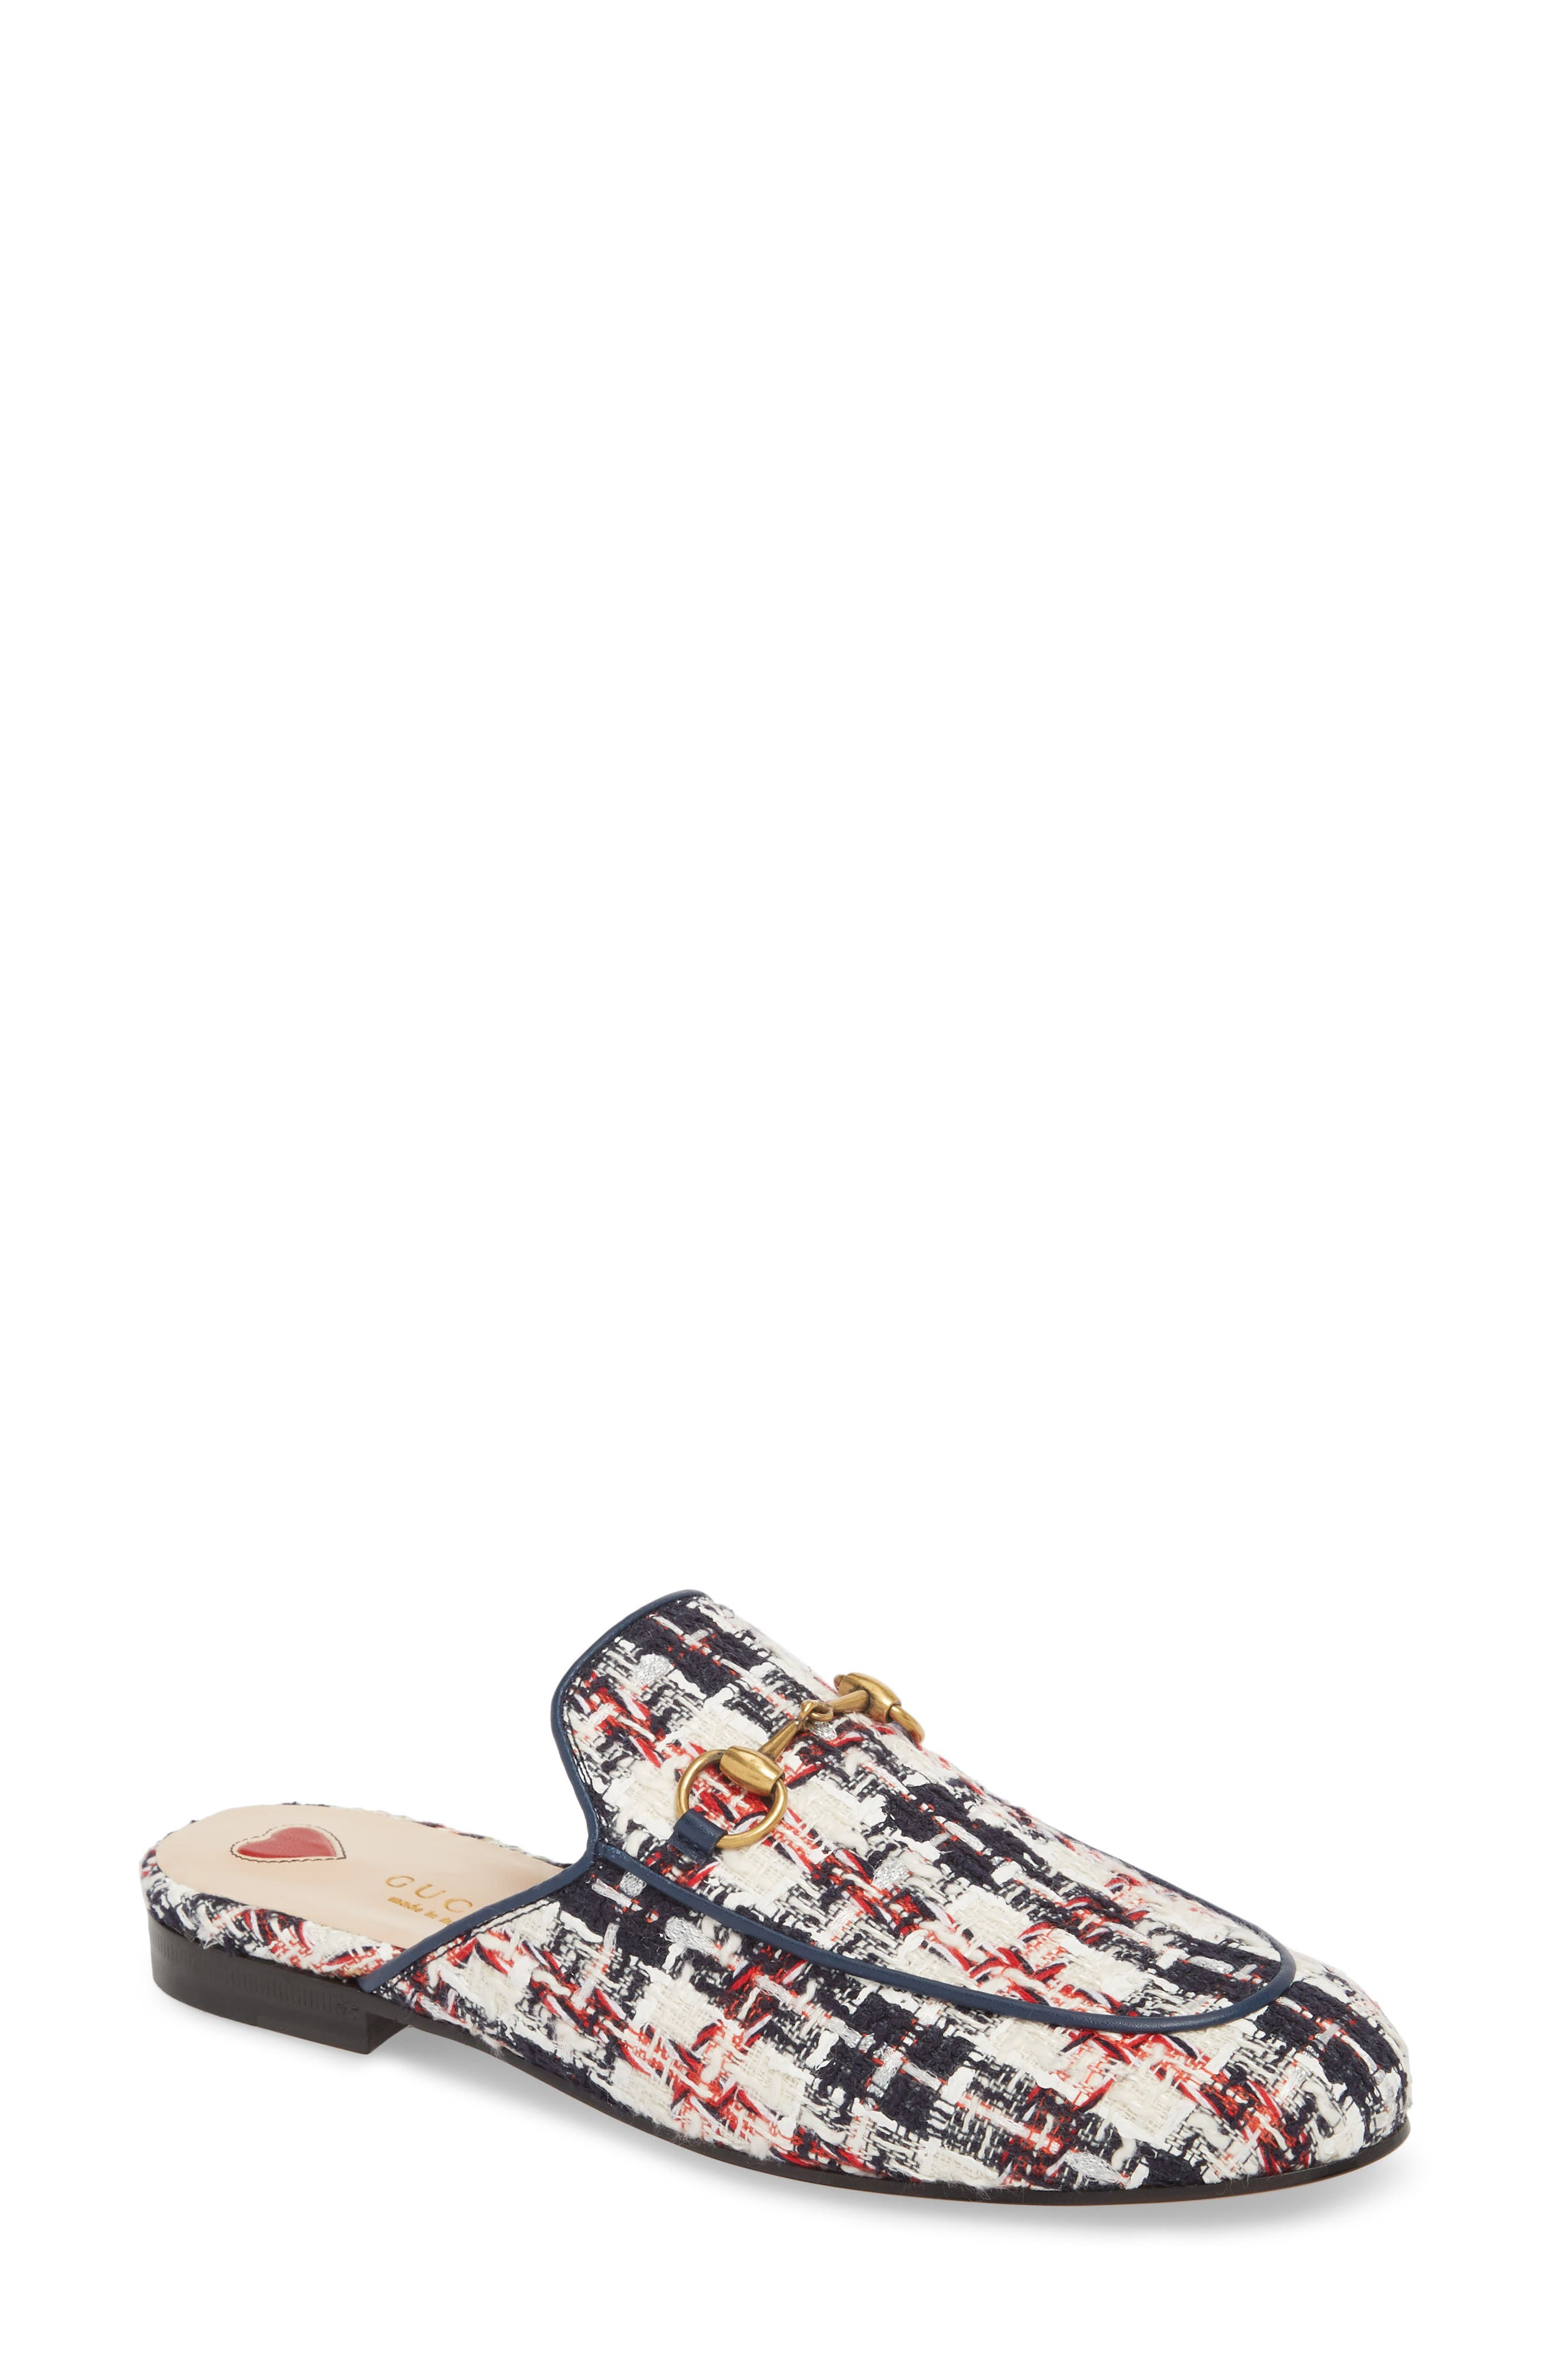 Princetown Loafer Mule,                             Main thumbnail 1, color,                             Blue/ White/ Red